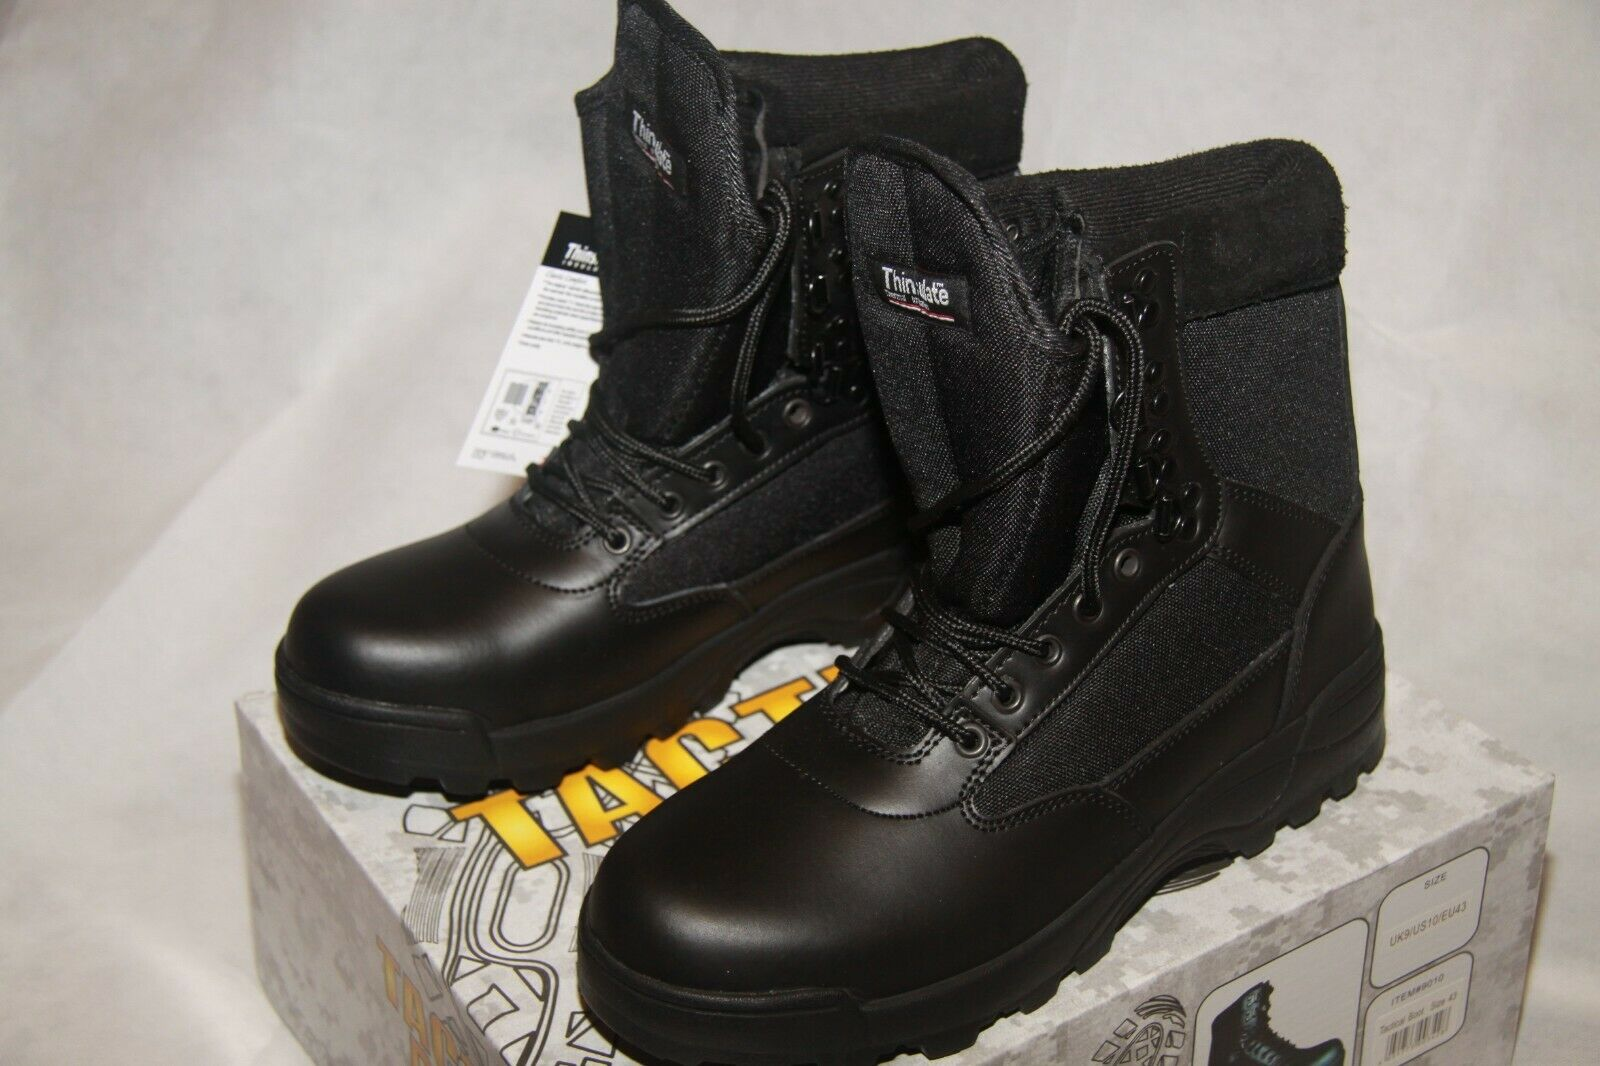 Brandit Tactical Military Combat Stiefel Thinsulate BRAND NEW IN BOX Größe 43